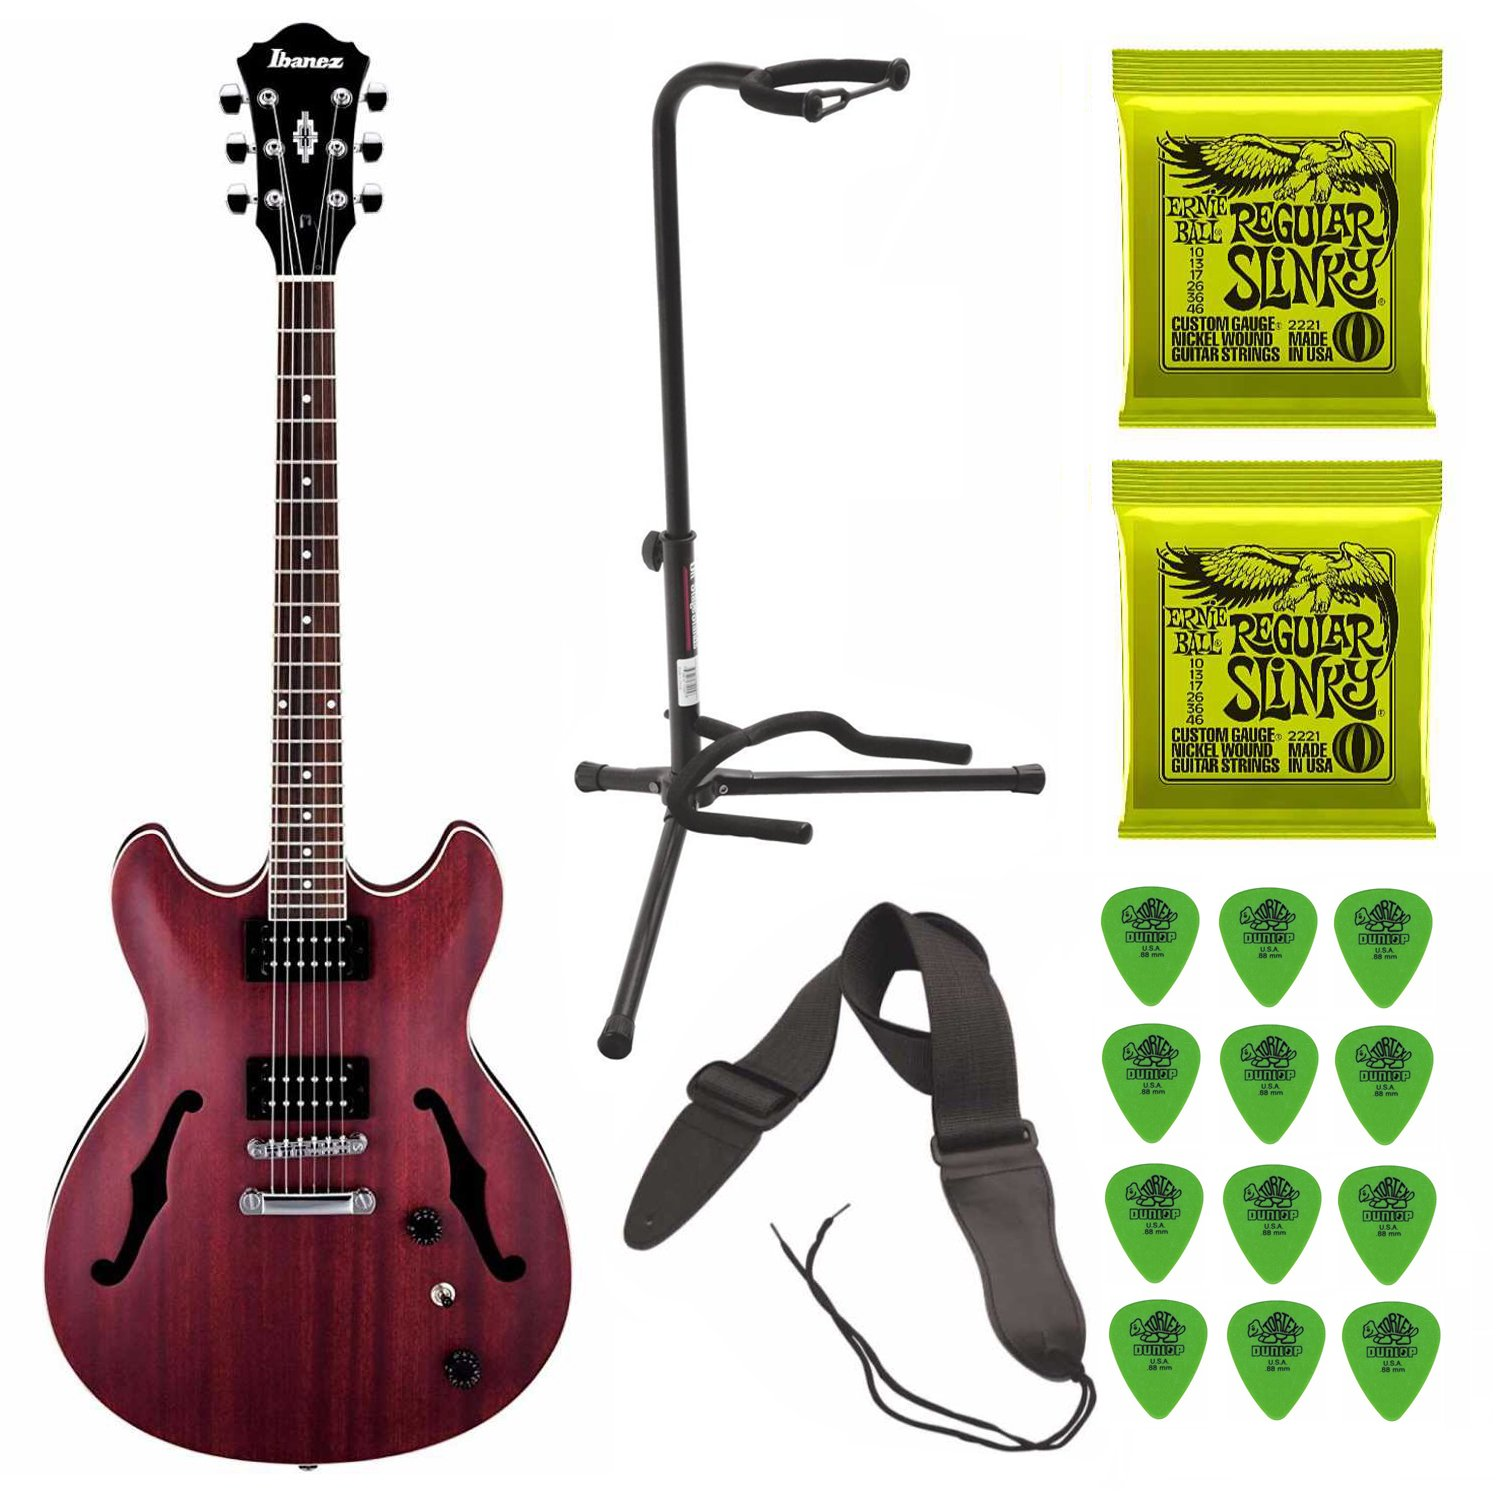 Ibanez Artcore Semi-Hollow Electric Guitar (Transparent Red Flat) Includes 2 Sets of Guitar Strings and Guitar Strap by Ibanez